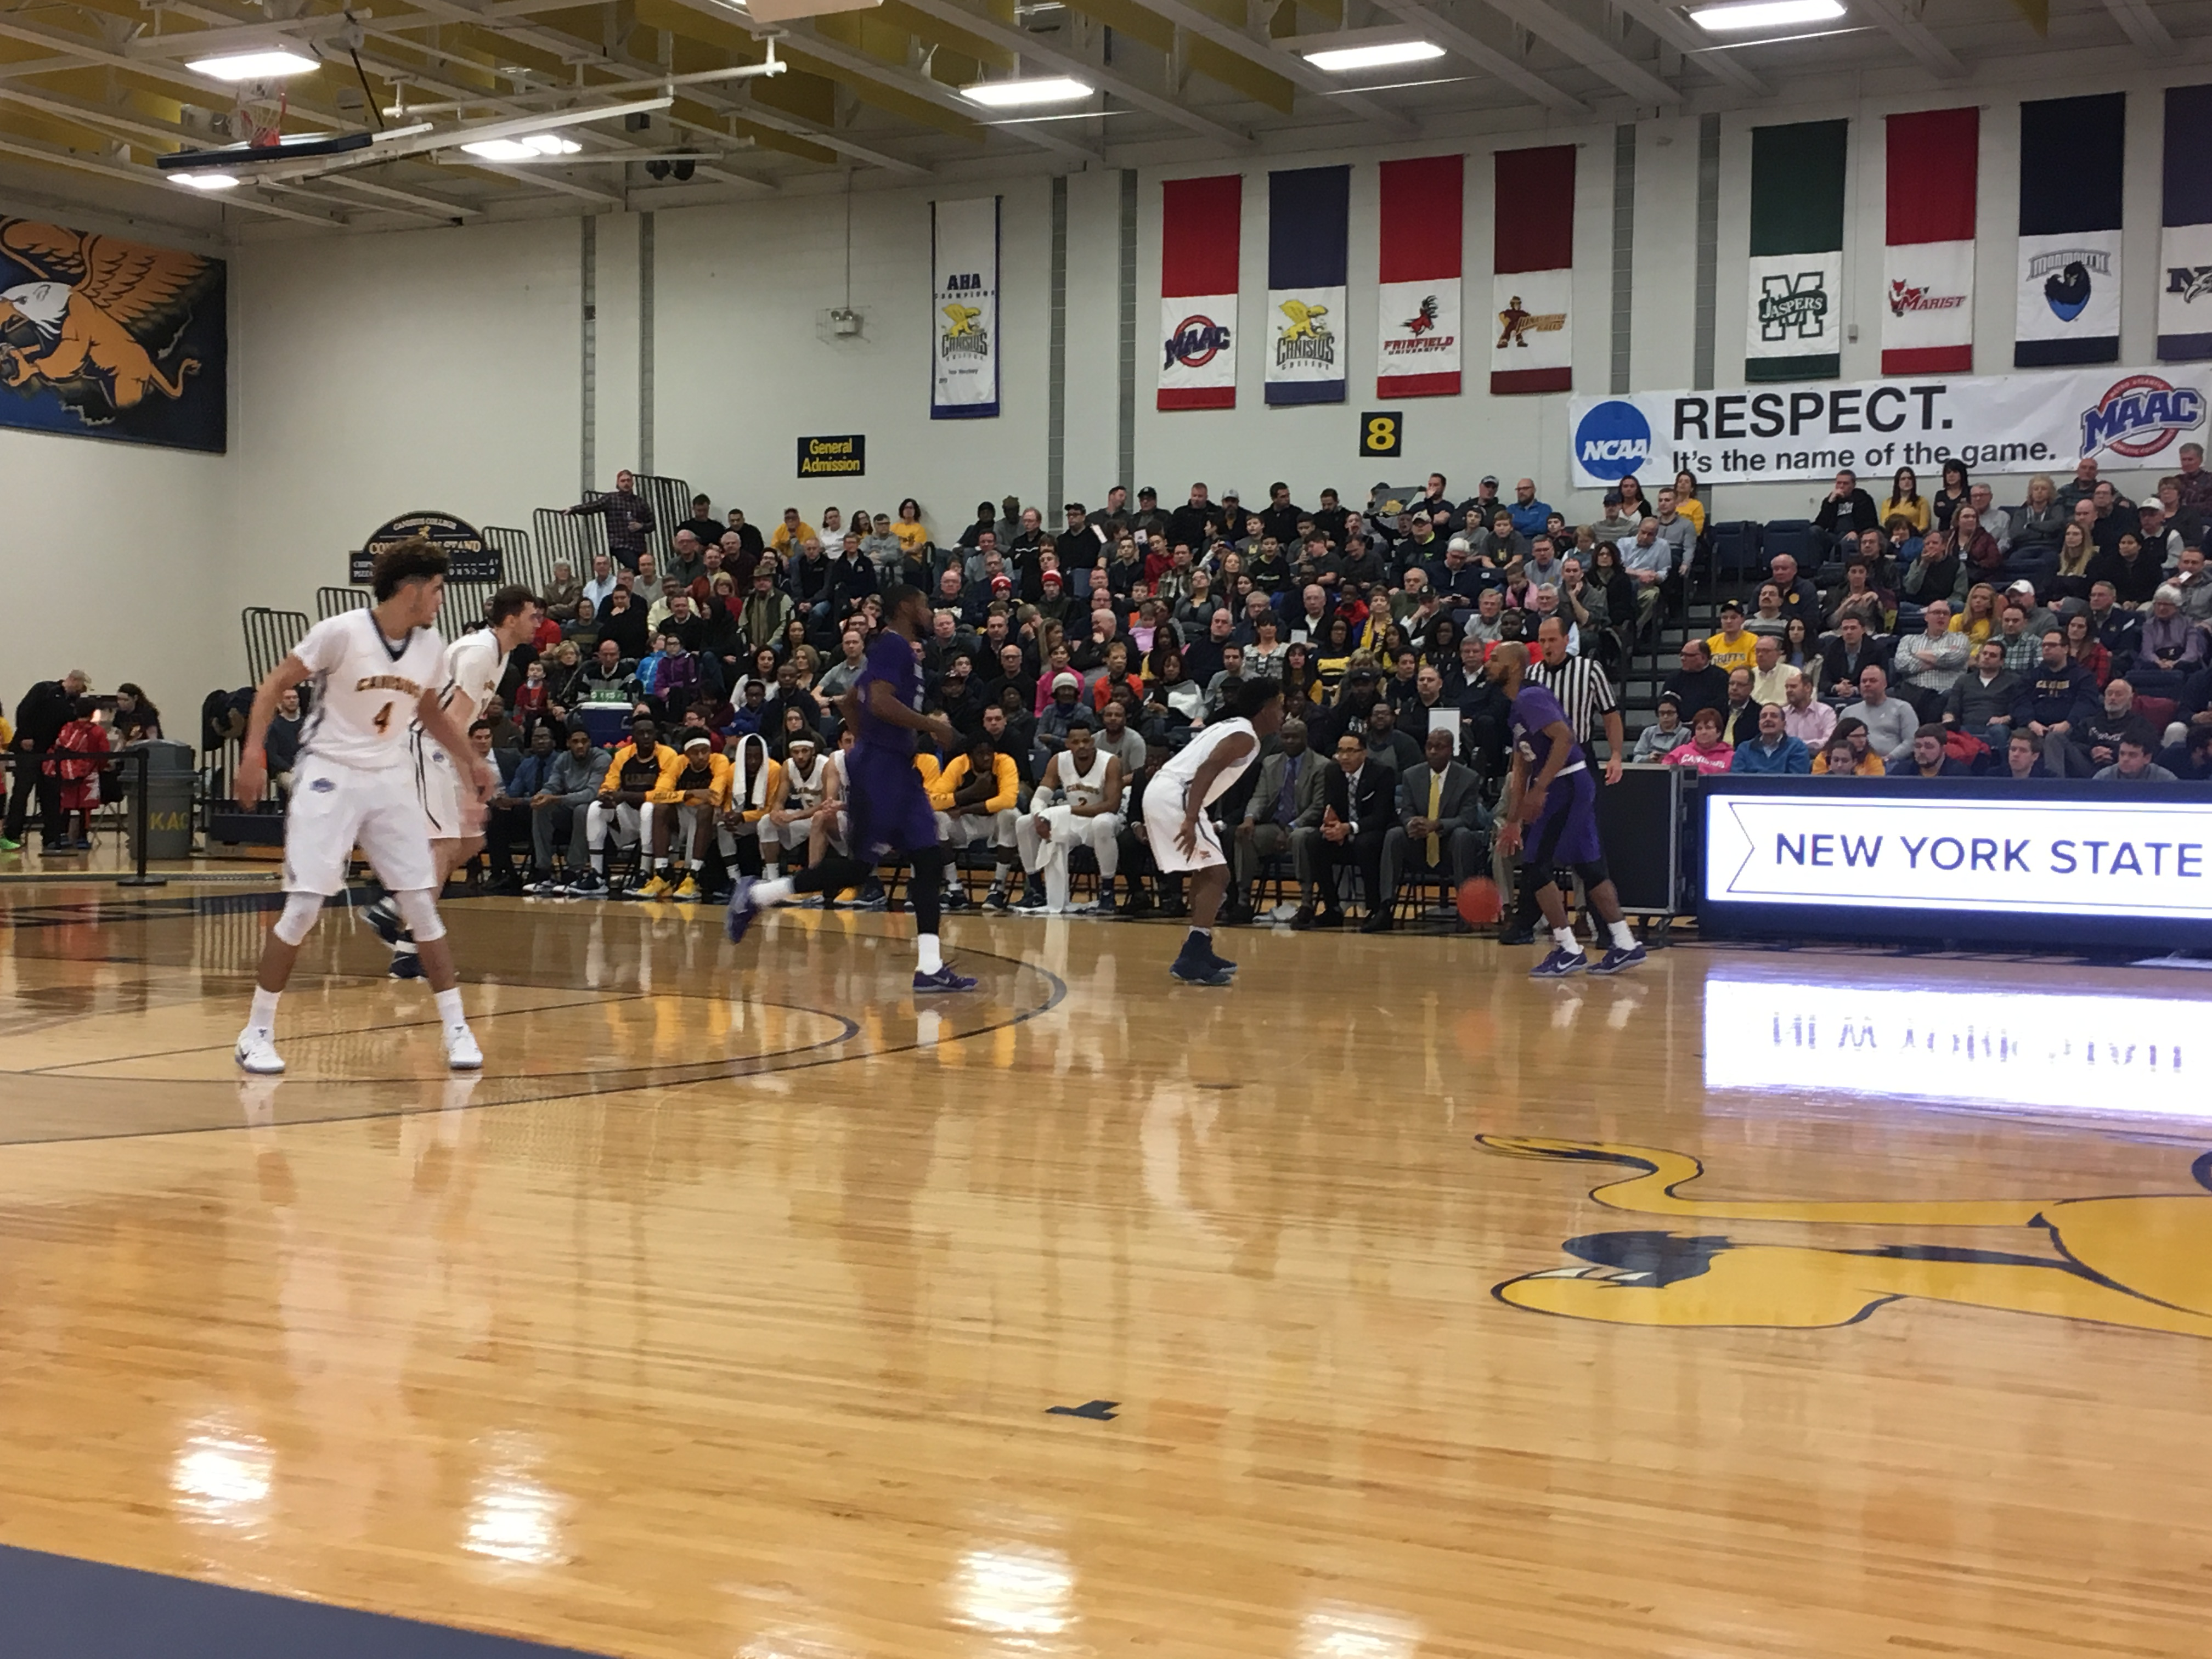 Canisius' Koessler Athletic Center (Buffalo News)